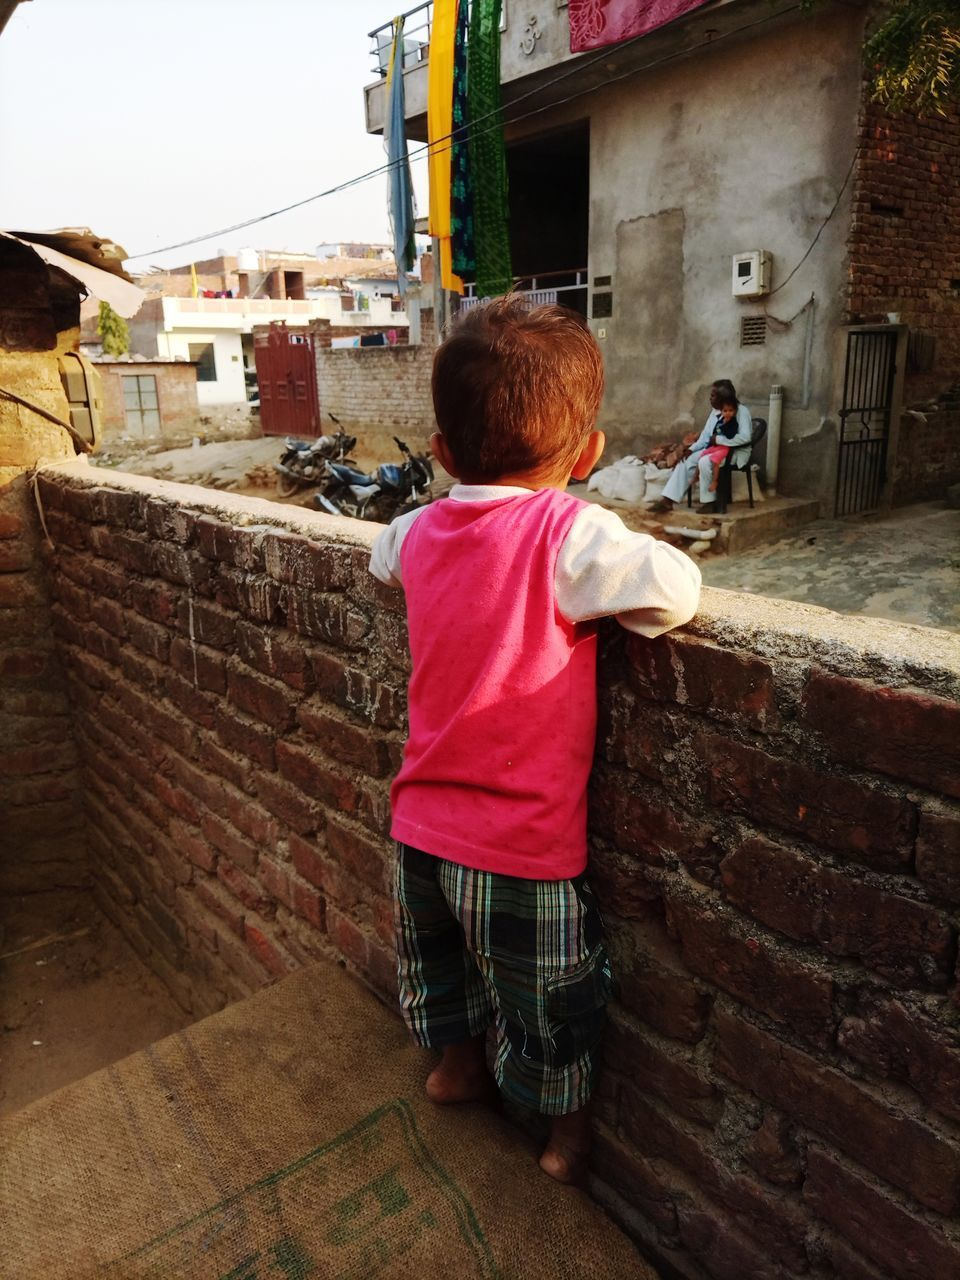 REAR VIEW OF BOY STANDING ON WALL